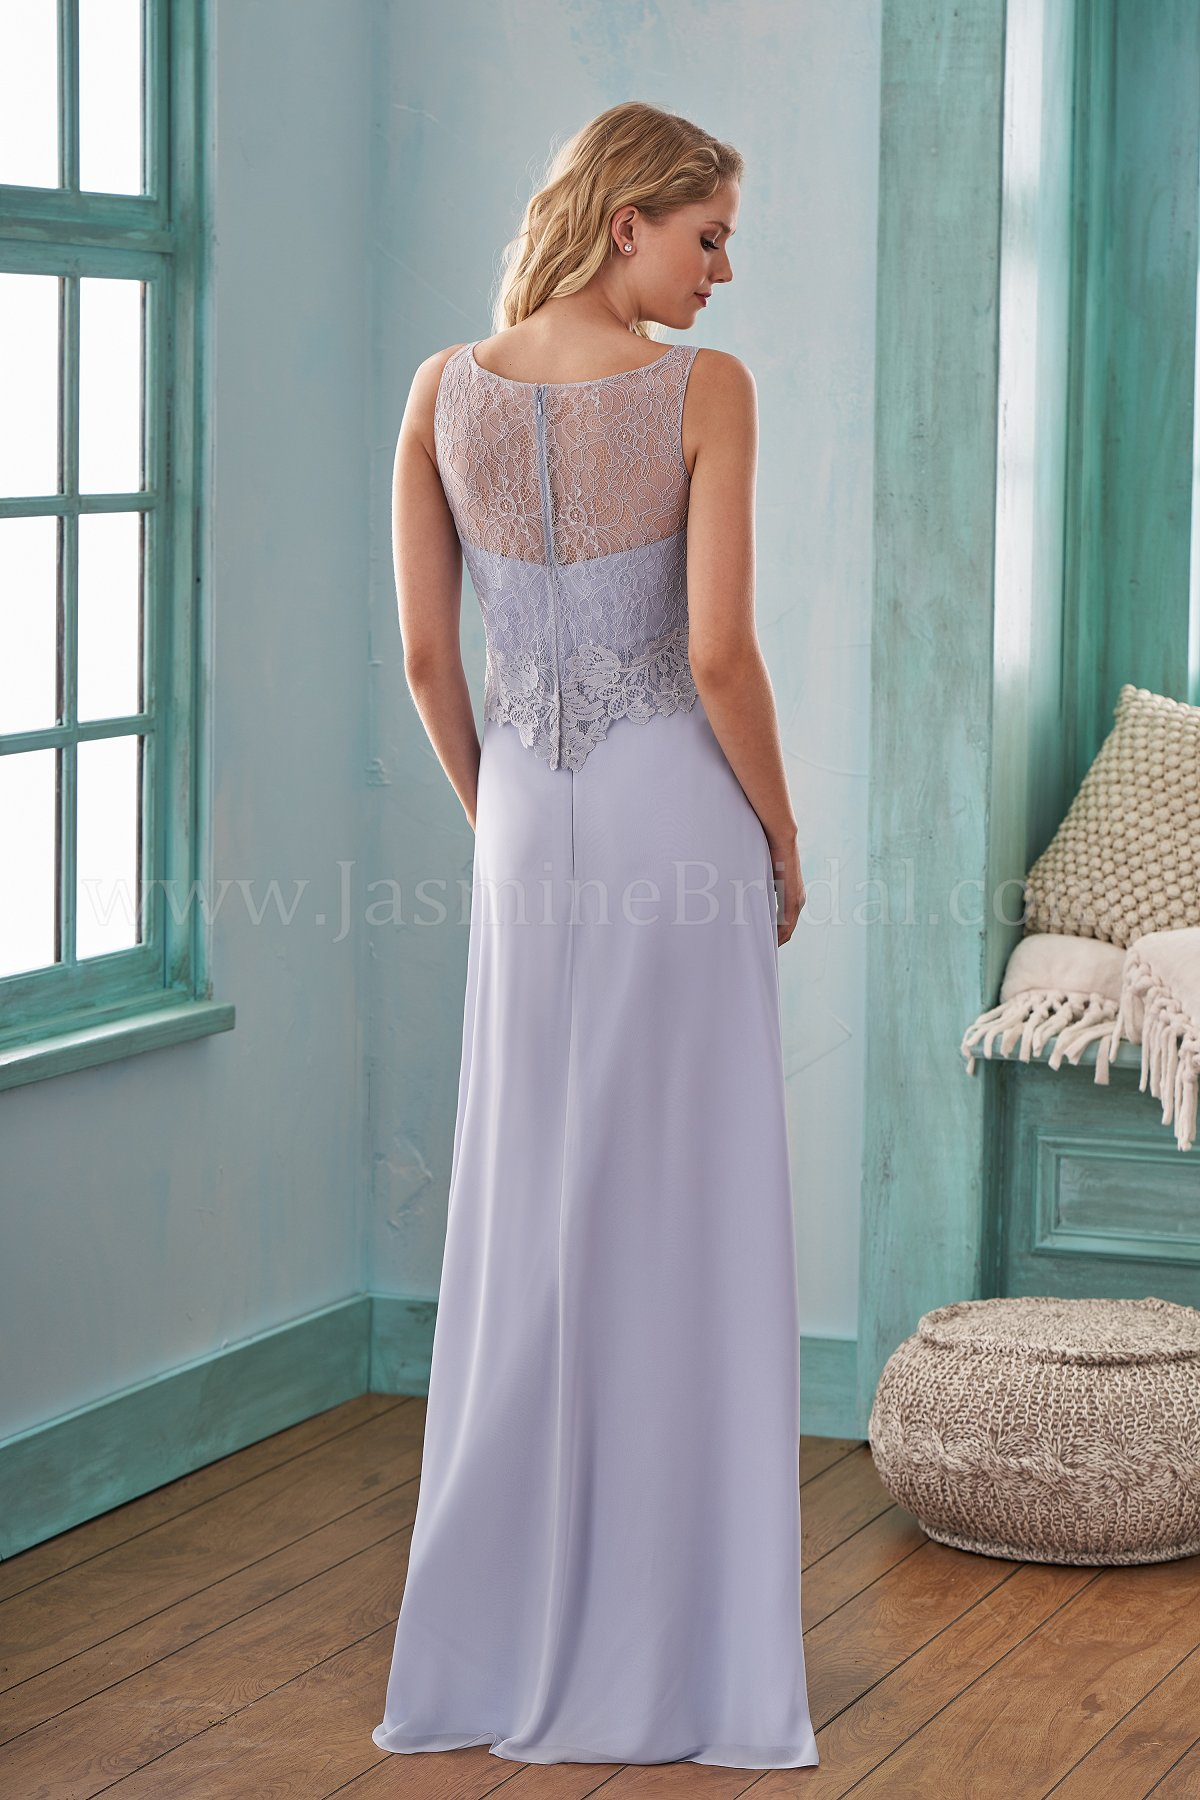 bridesmaid-dresses-B203011-B